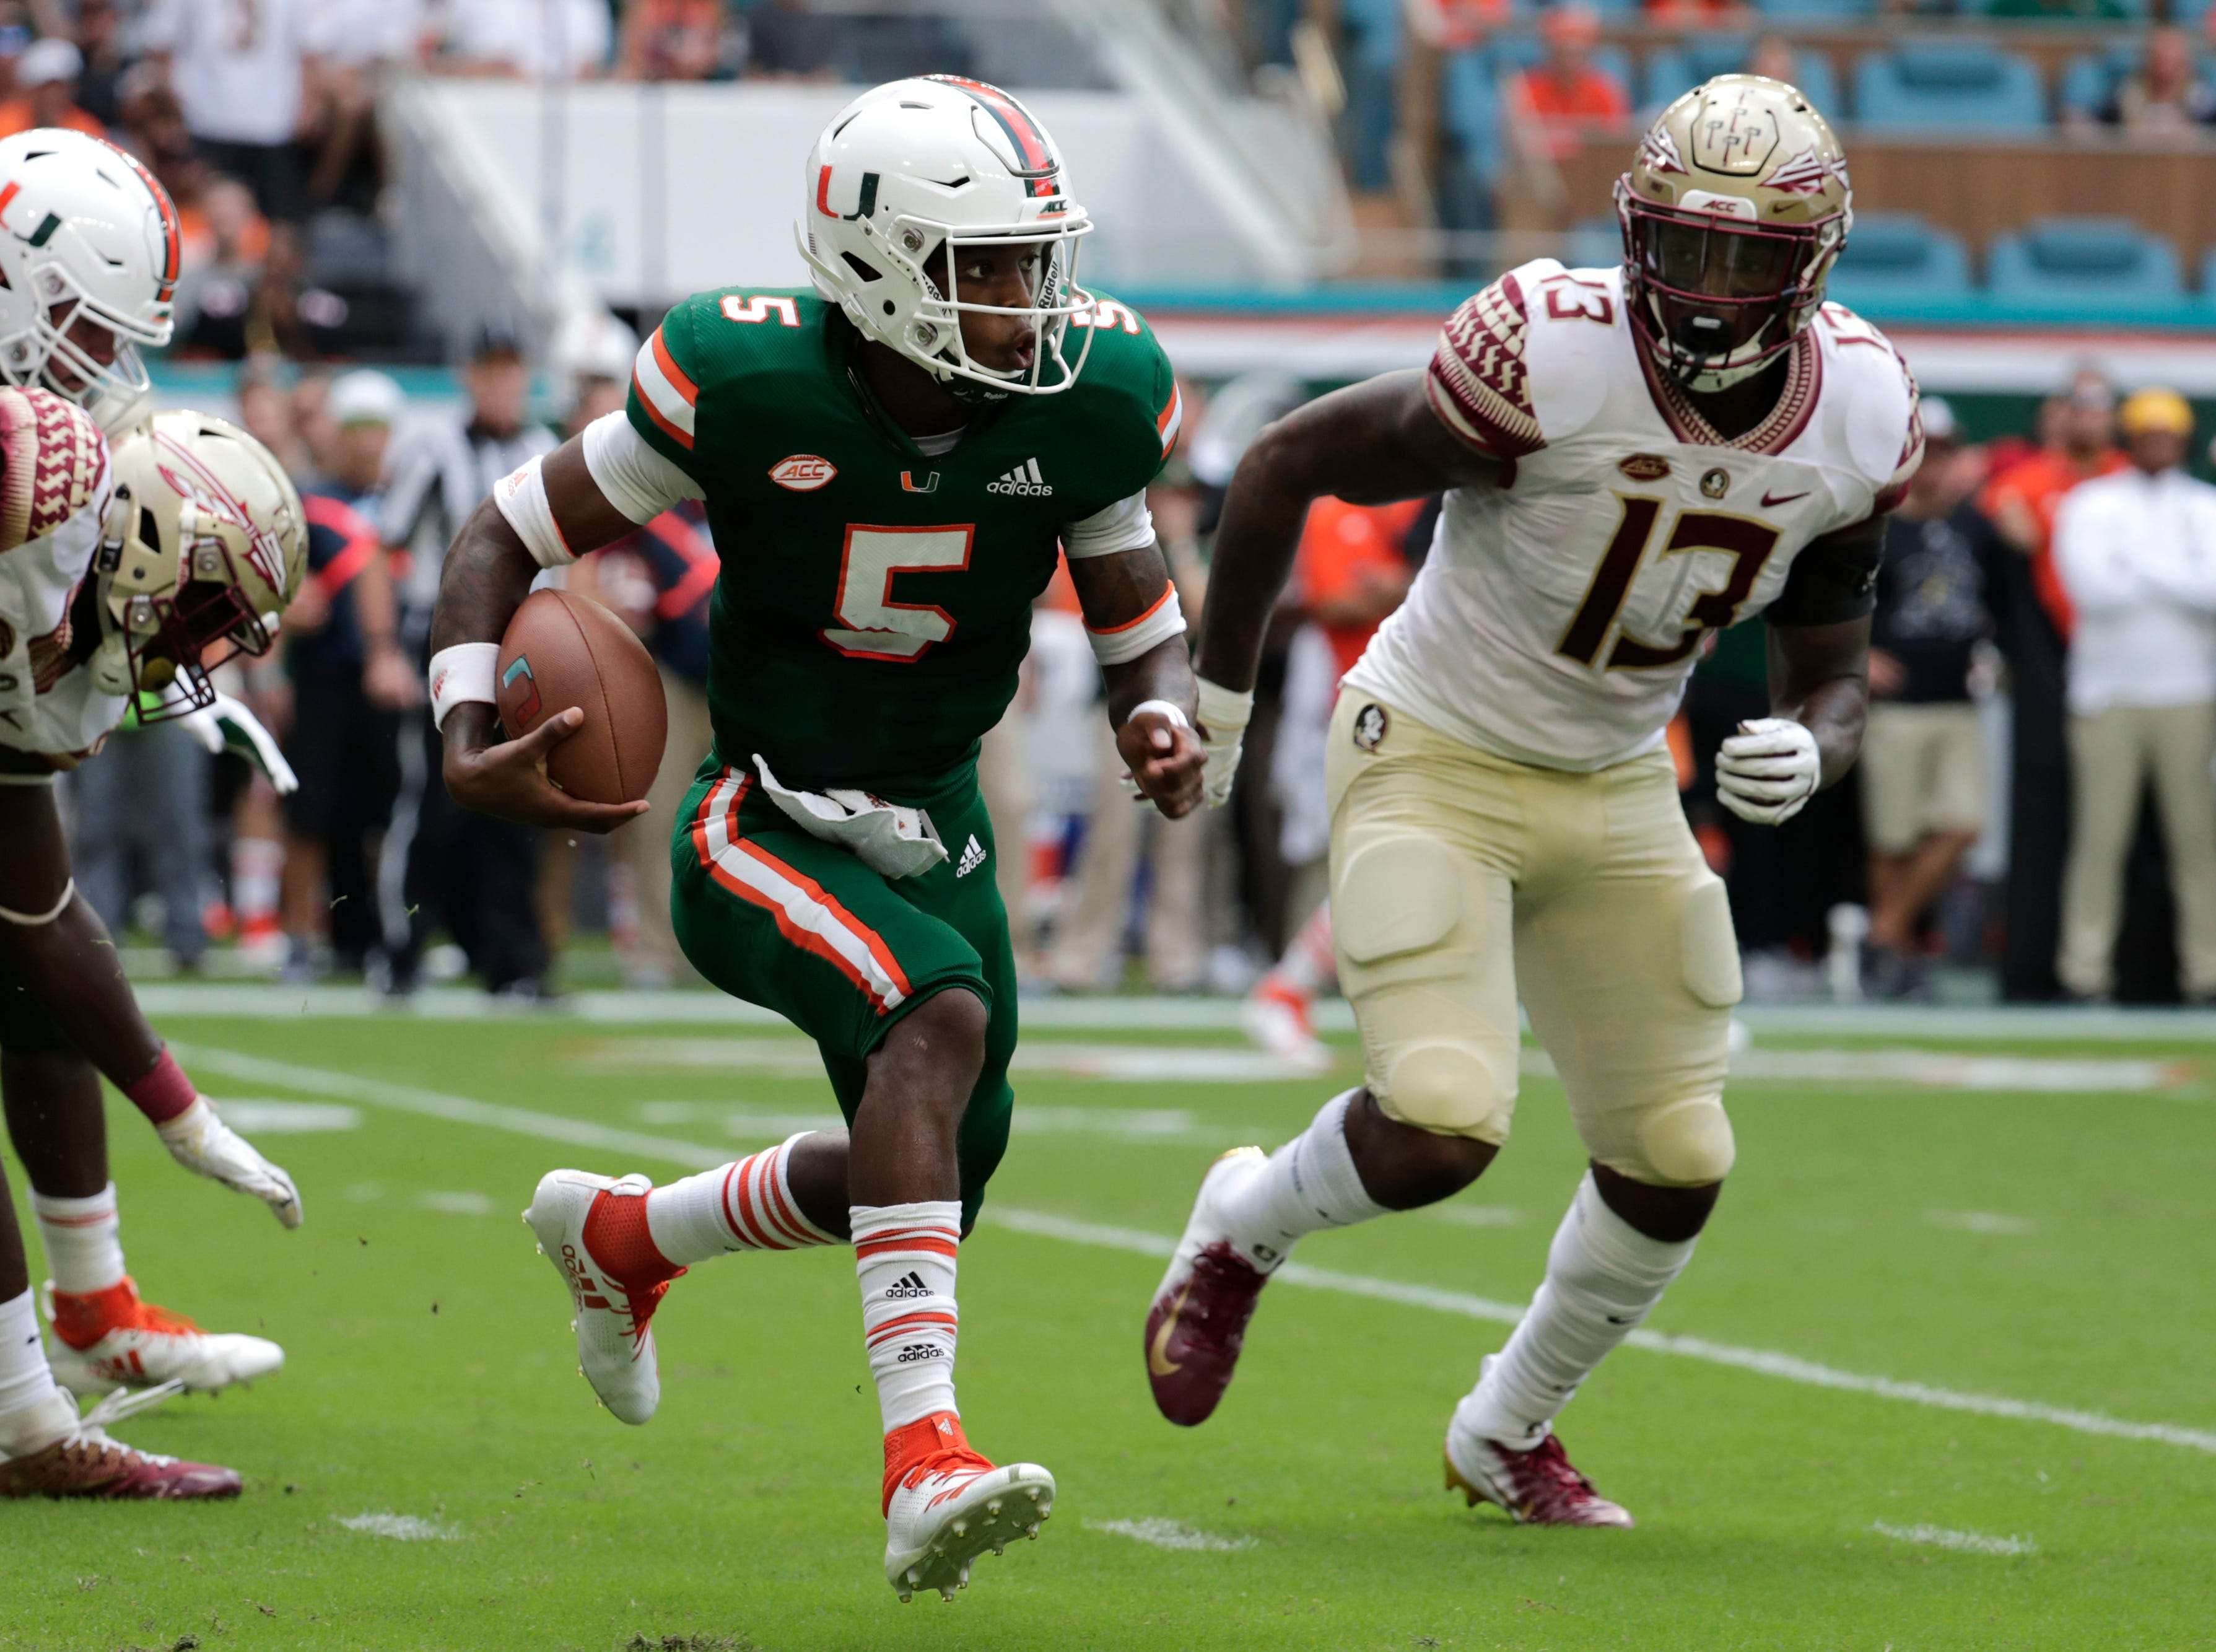 Miami quarterback N'Kosi Perry (5) runs as Florida State defensive end Joshua Kaindoh (13) defends during the first half of an NCAA college football game, Saturday, Oct. 6, 2018, in Miami Gardens, Fla. (AP Photo/Lynne Sladky)